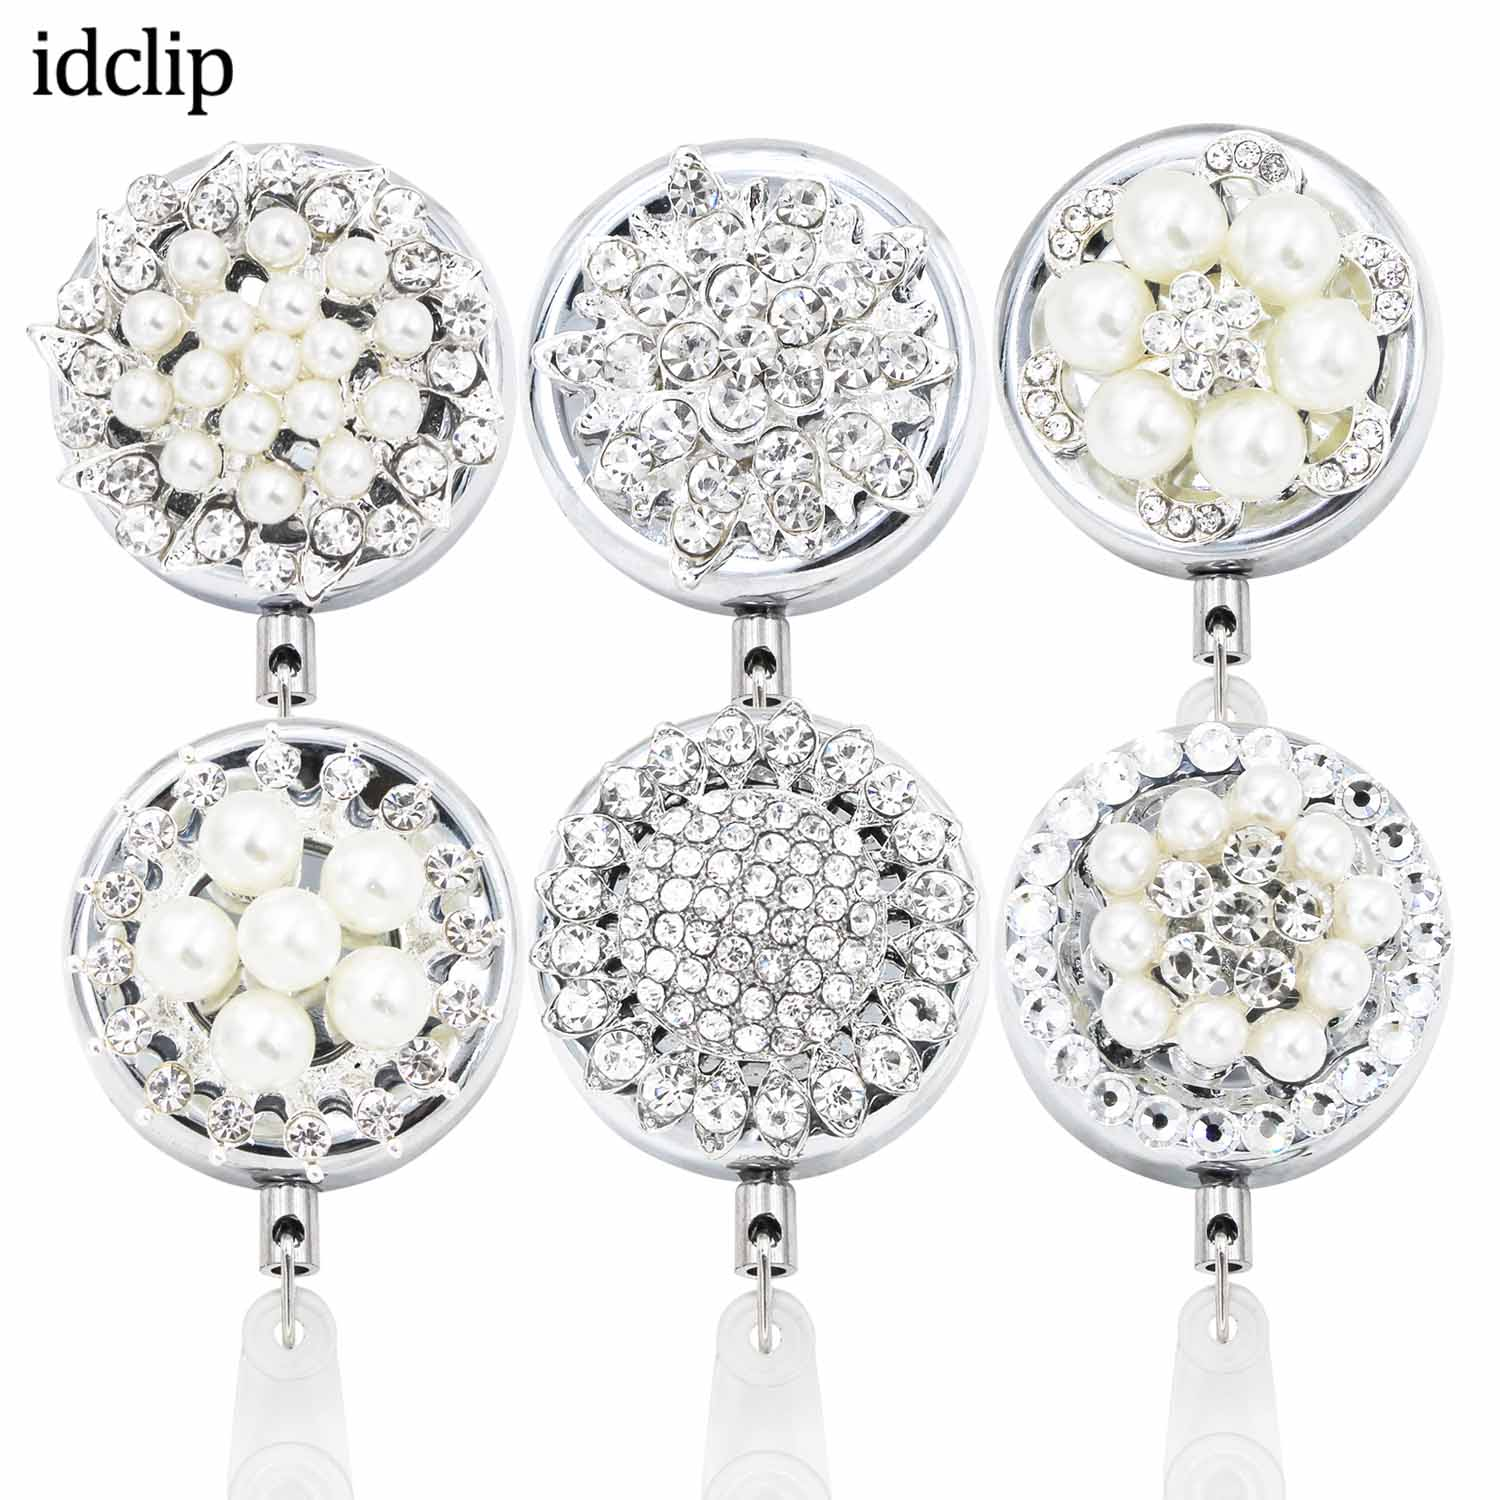 Idclip 1PCS Bling Rhinestone Pearl Badge Reel ID Retractable Badge Holder Belt Clips Metal Heavy Duty Steel Wire Cord